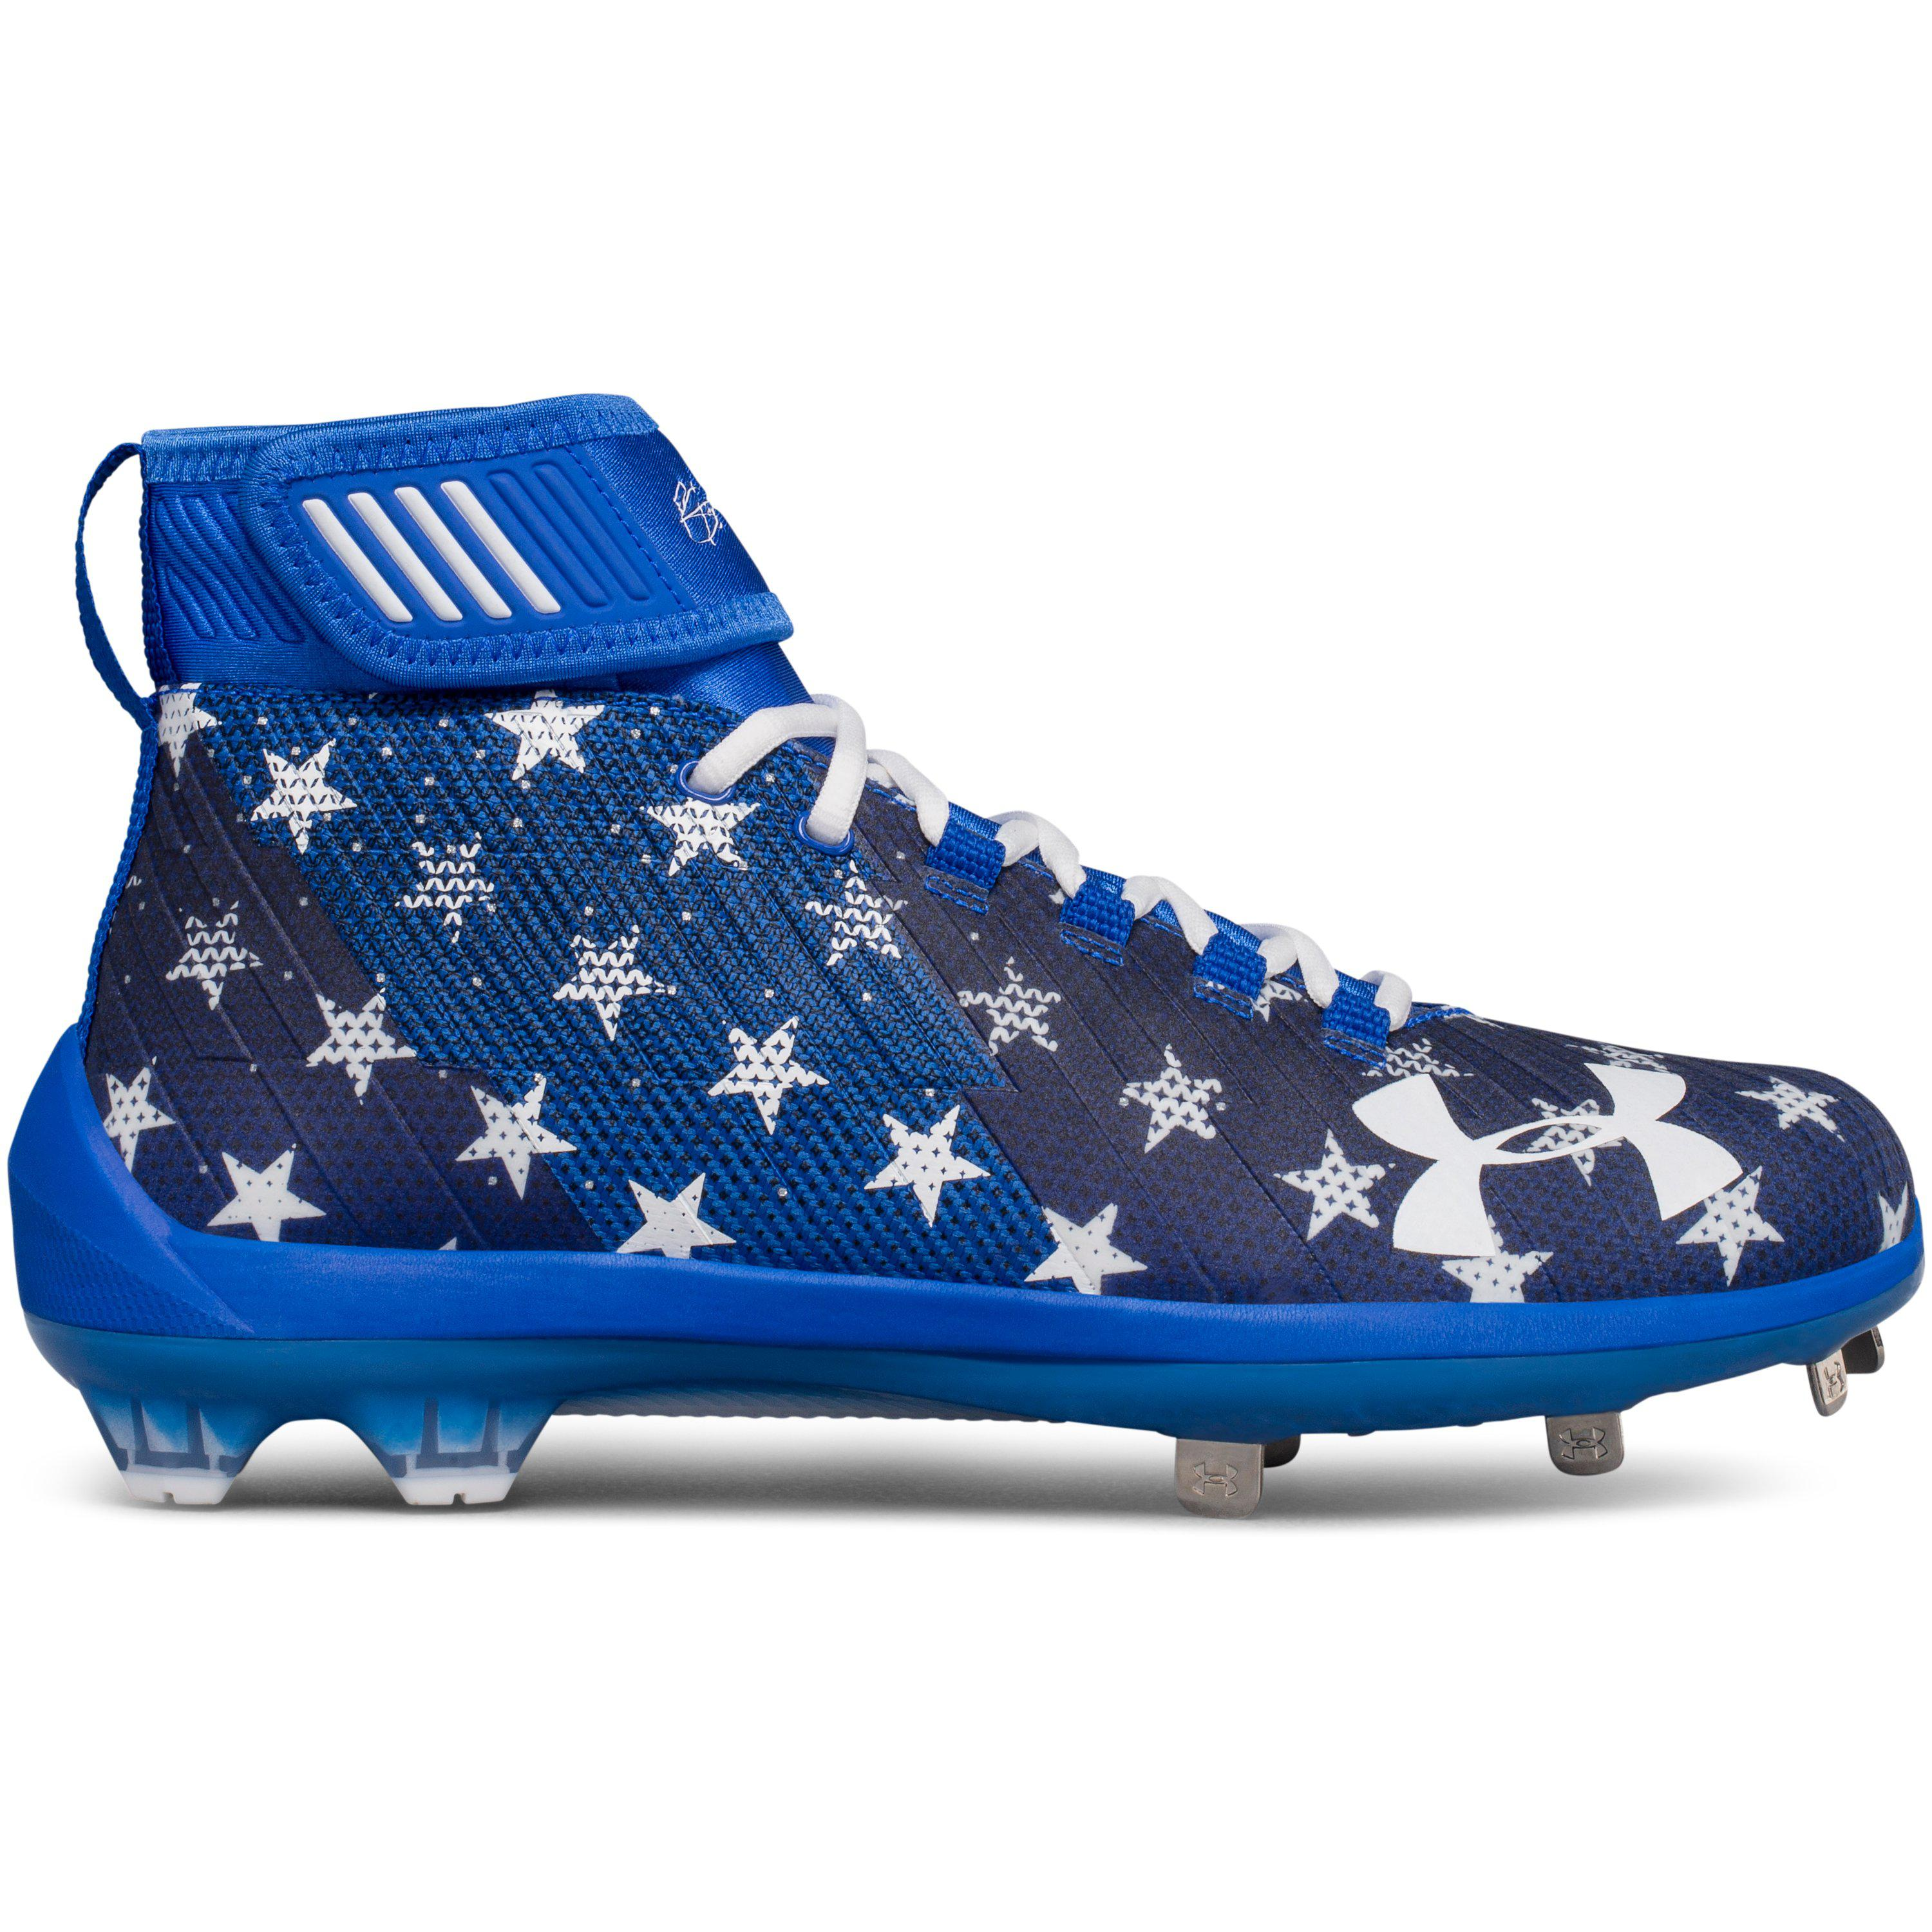 Under Armour Men S Ua Harper 2 Mid St Limited Edition